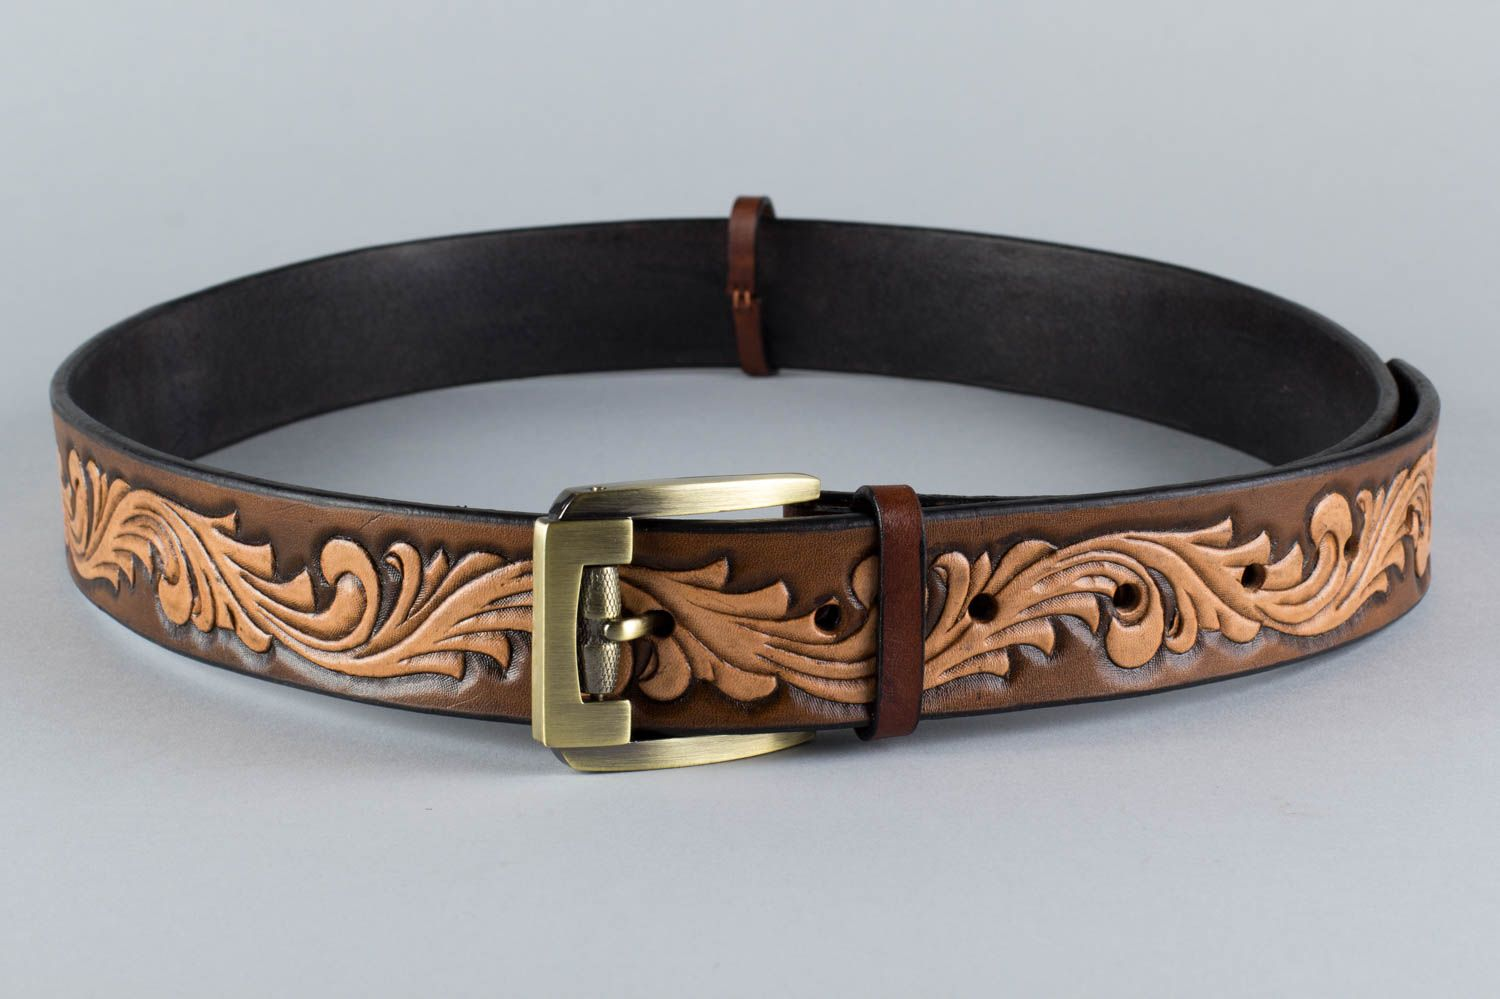 Handmade stylish unusual brown belt made of natural leather with metal buckle photo 5